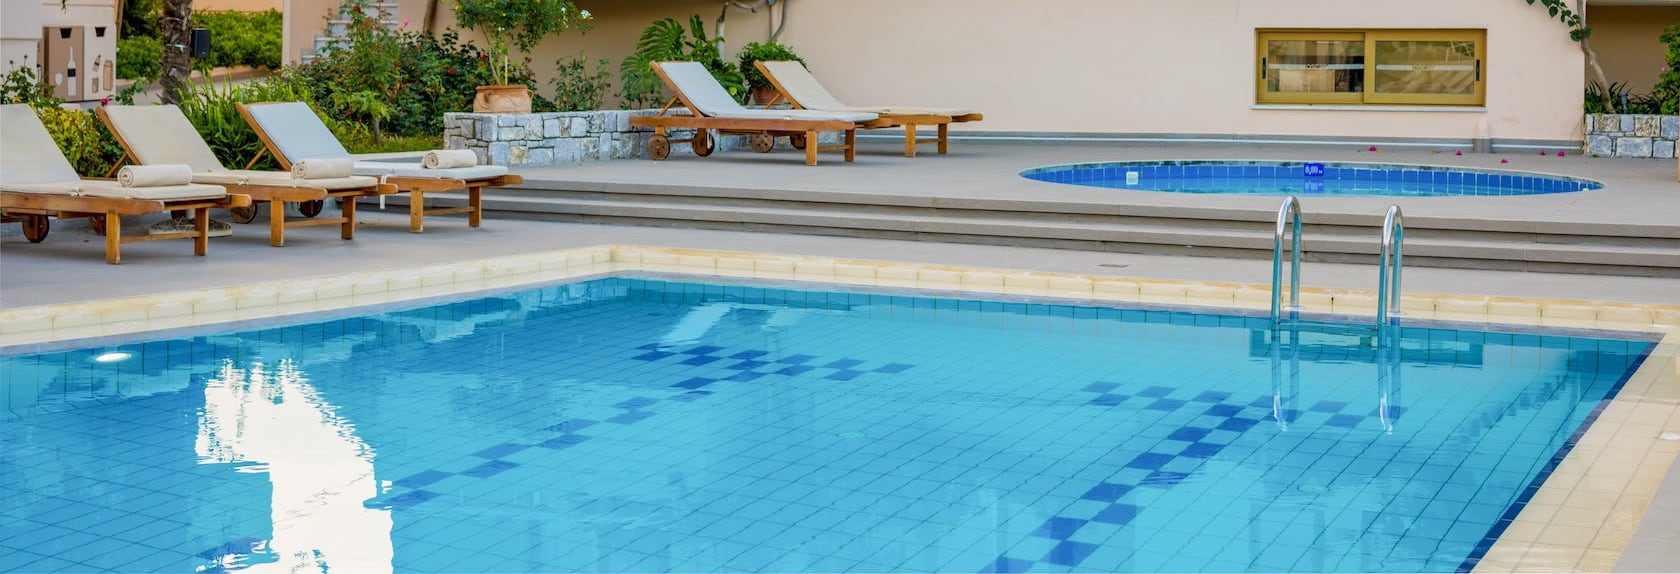 Sunbeds by the pool in the Oscar Suites & Village hotel in Chania, Crete.